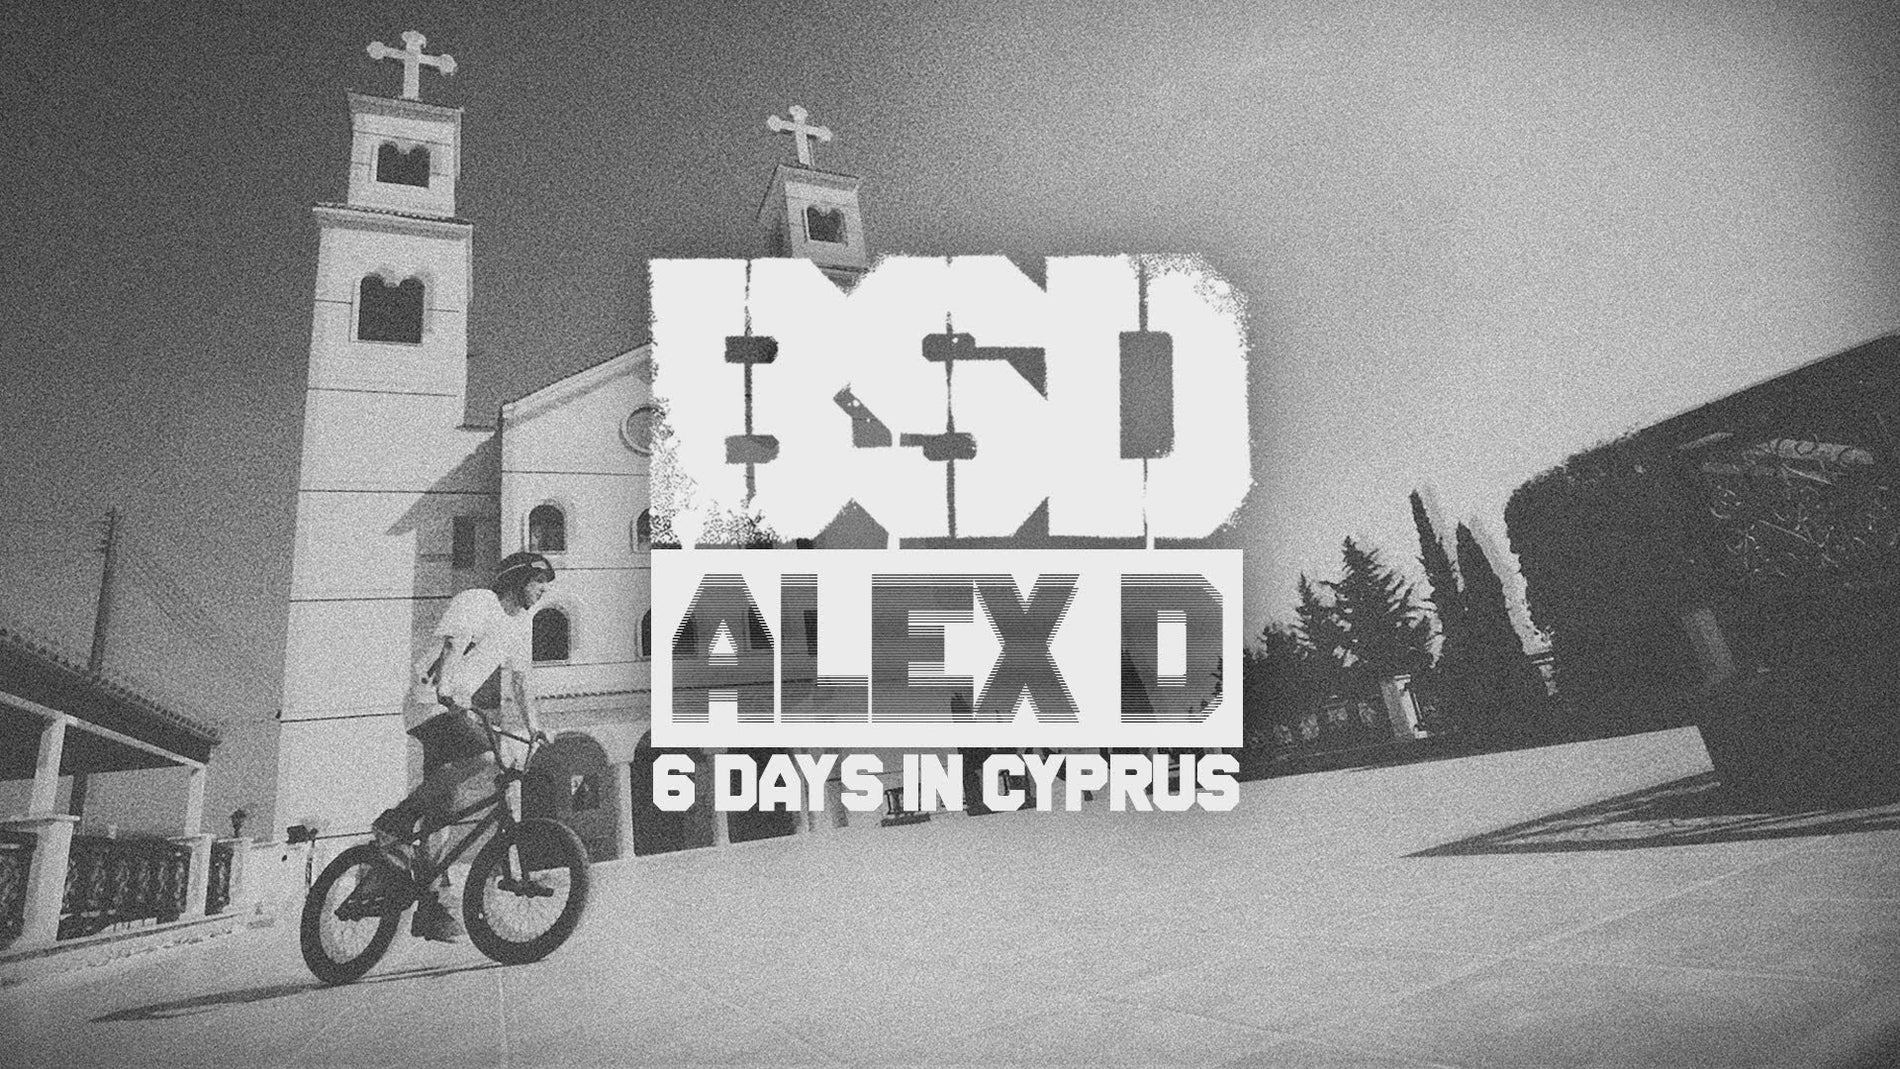 Alex D - 6 Days in Cyprus